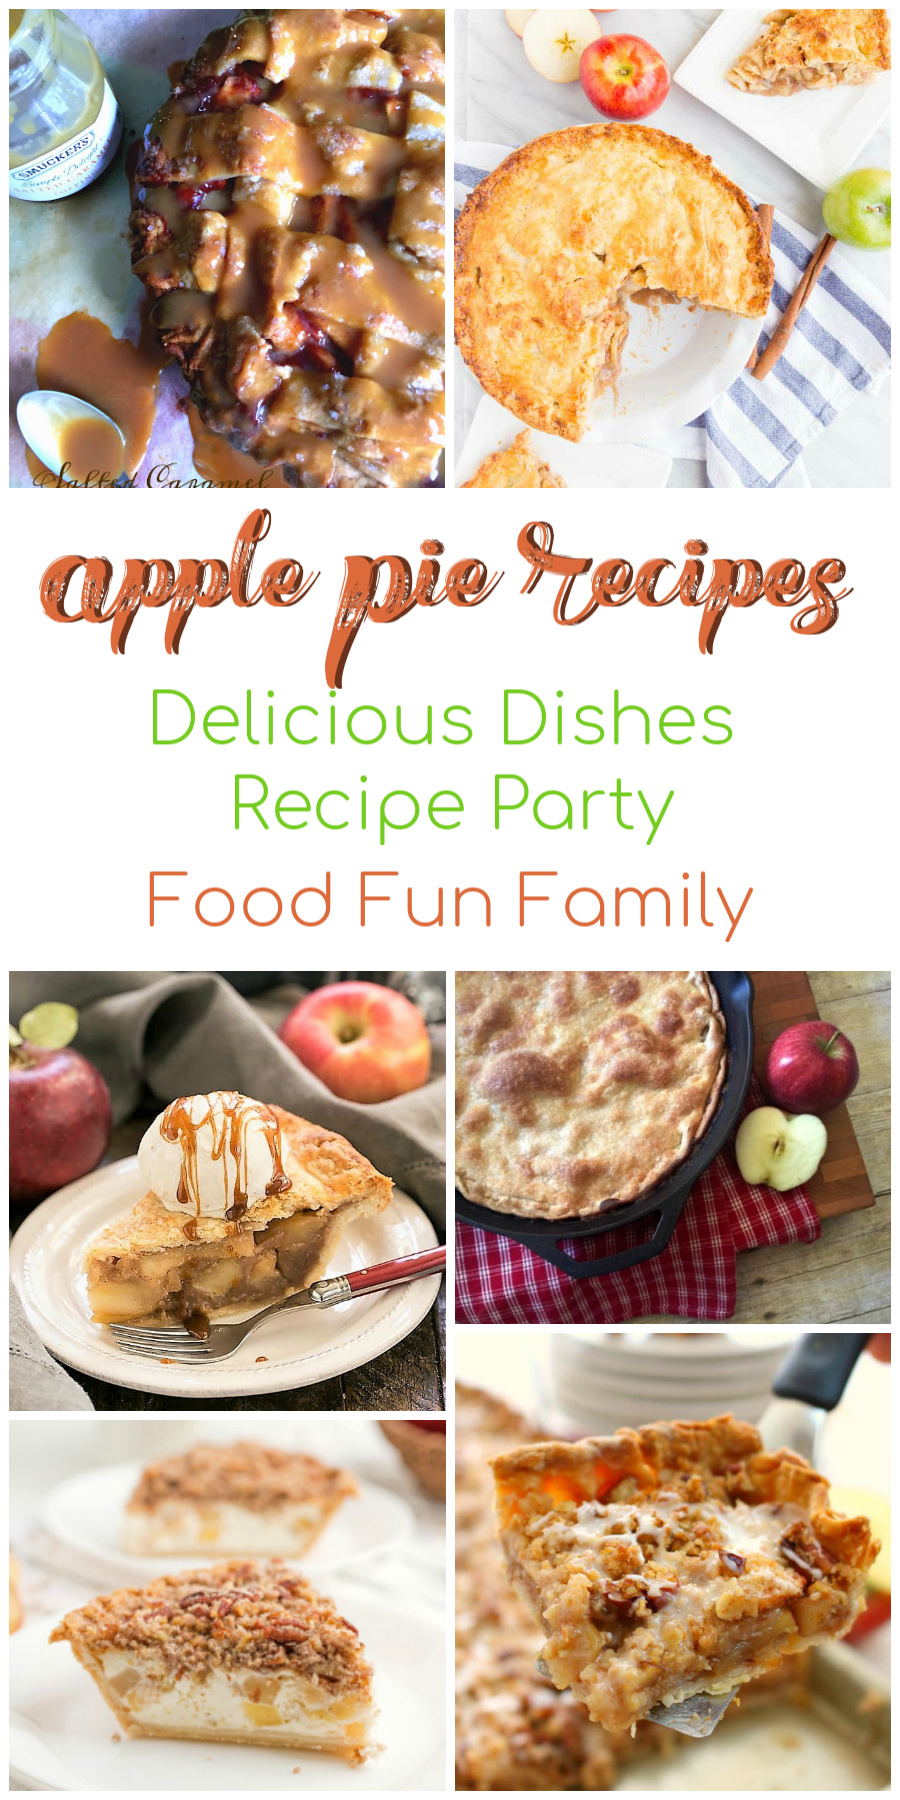 Apple Pie Recipes - a Delicious Dishes recipe party with Food Fun Family